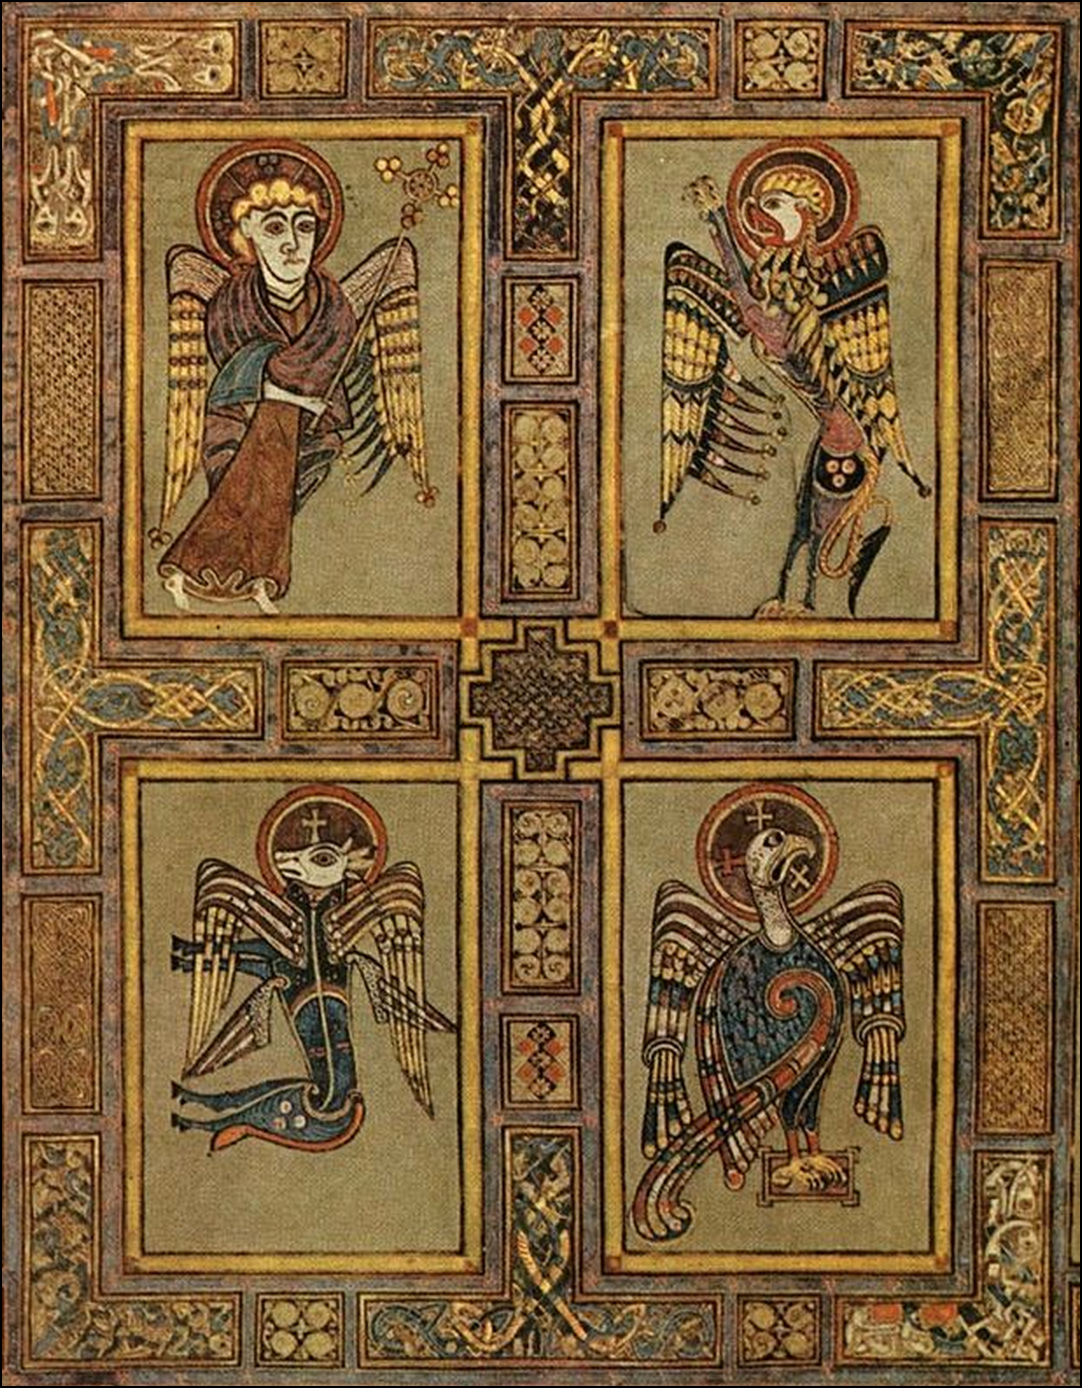 The text of the gospels the evangelists symbols man lion ox the symbols of the evangelists in the exquisite book of kells fol 27v at trinity college dublin biocorpaavc Image collections